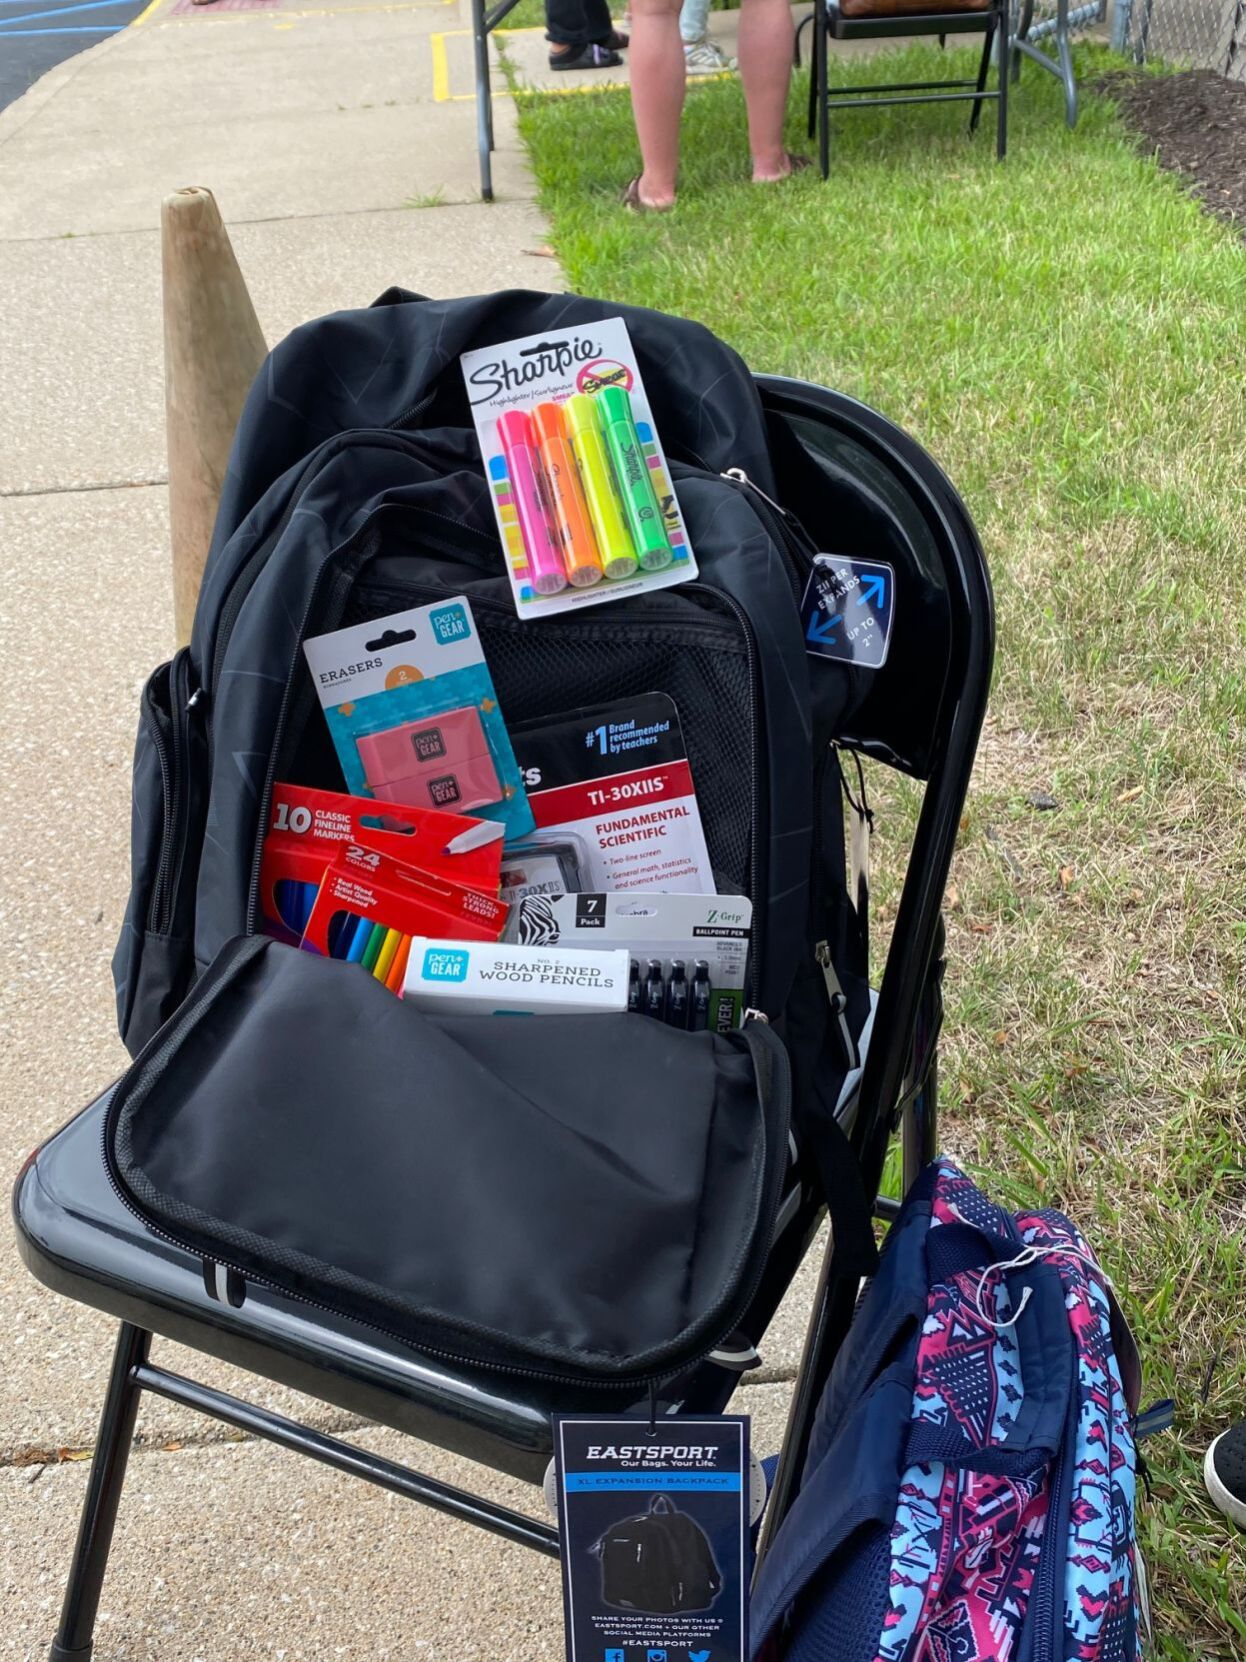 Typical backpack